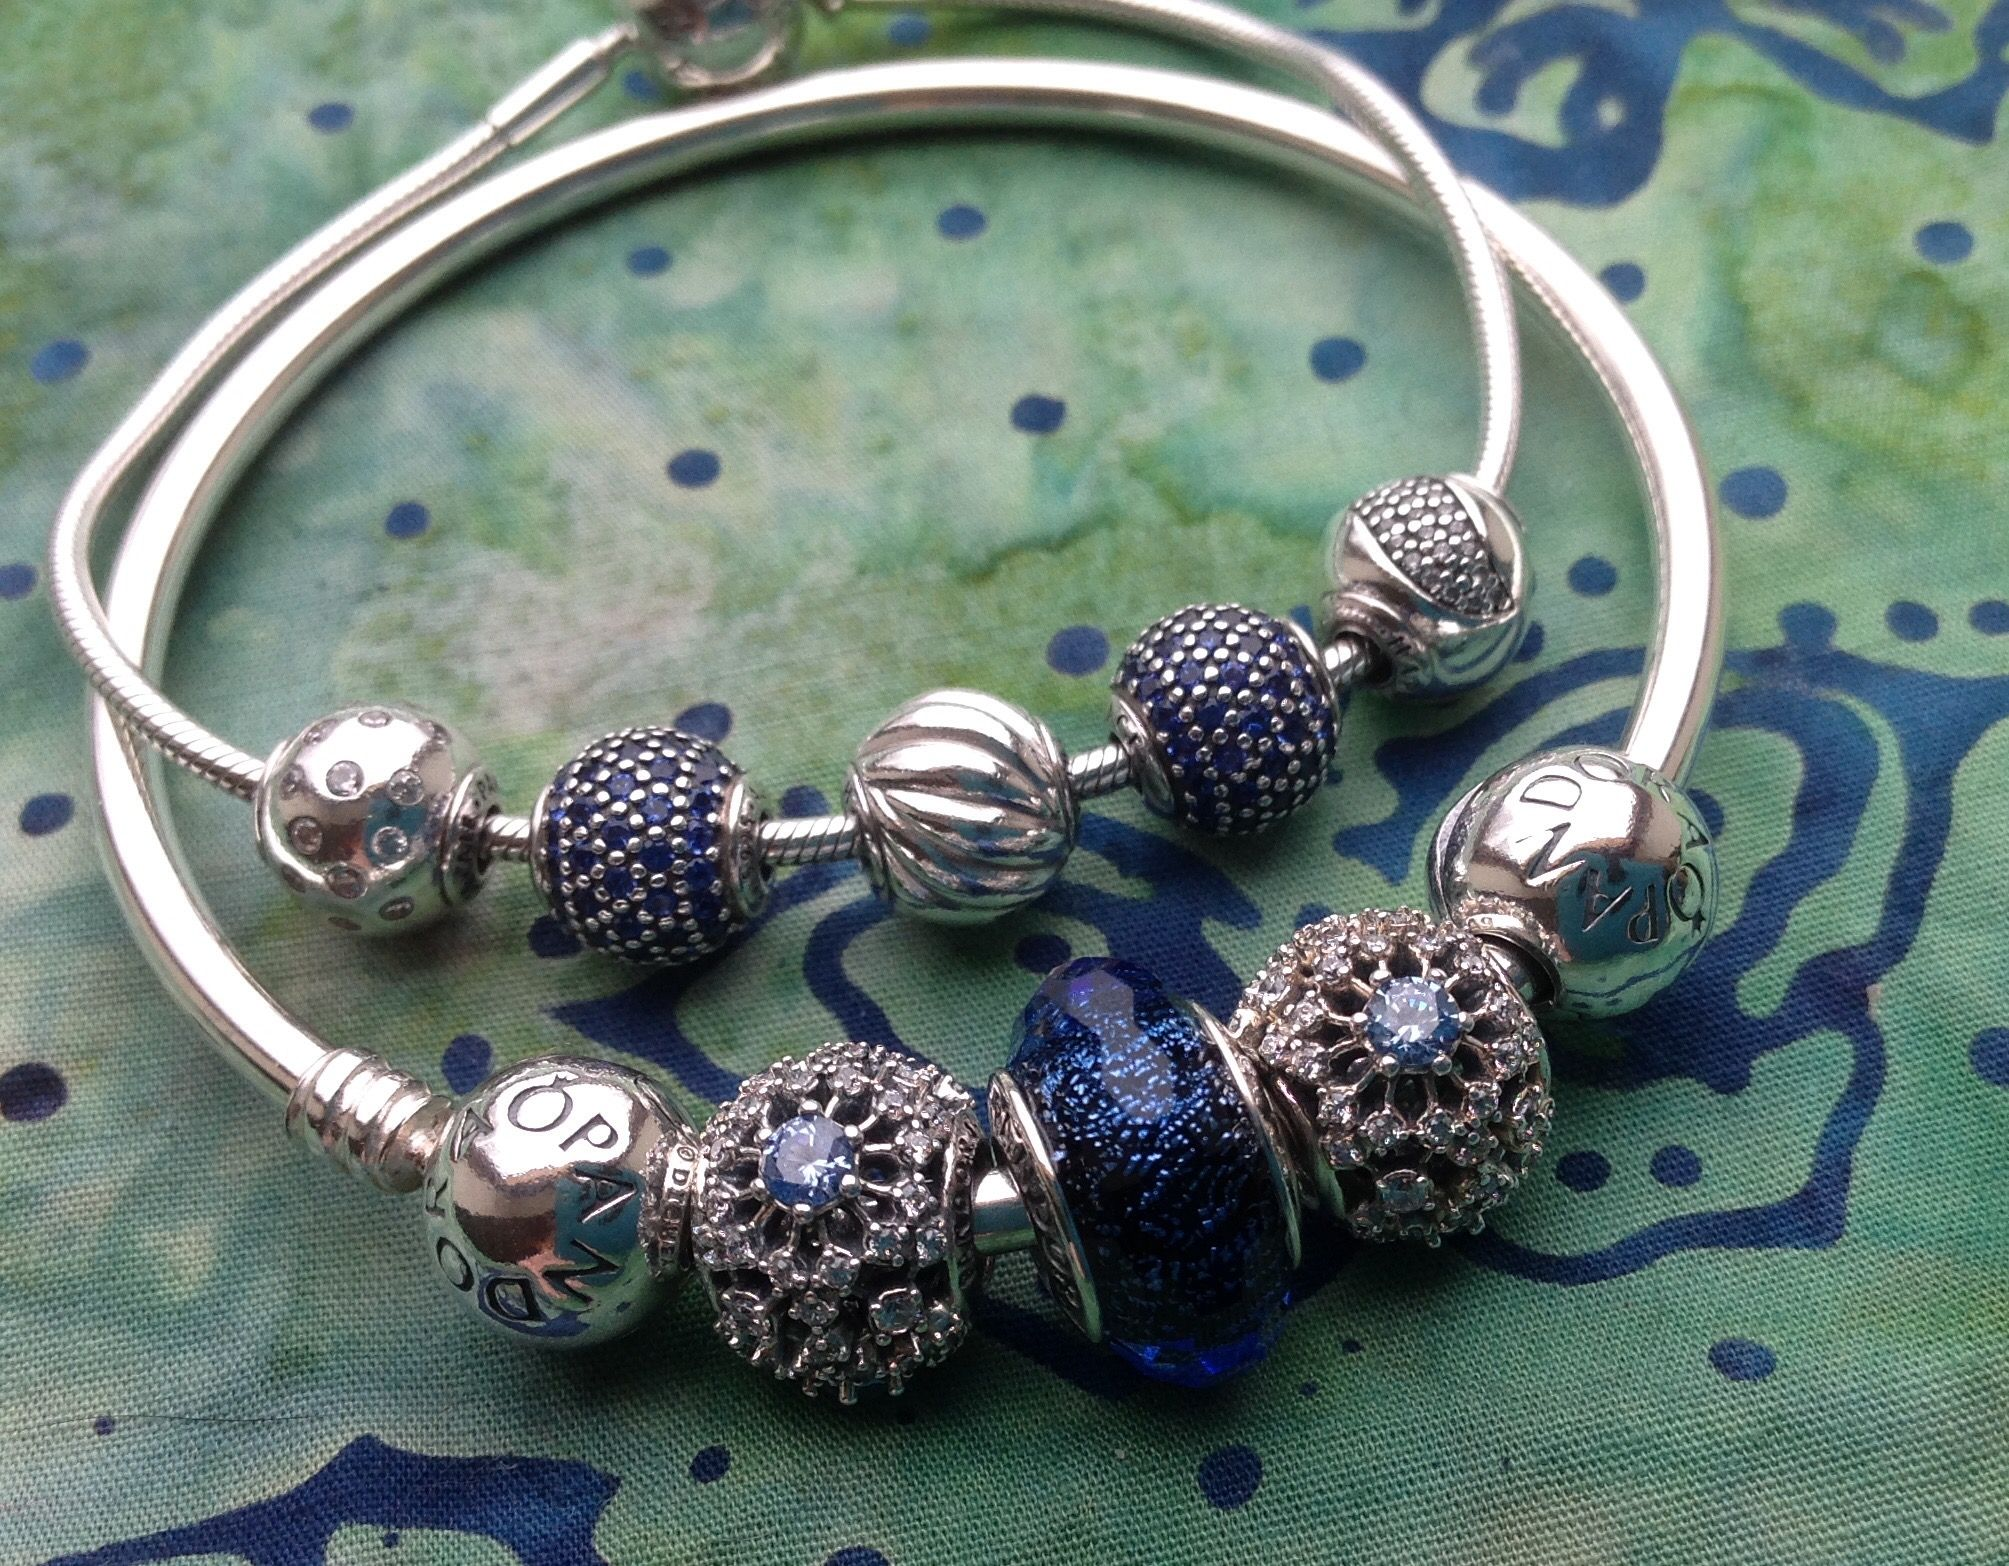 6eee3f2a0 Pandora favourites, Disney Cinderella , Iridescent Blue Murano, and Peace  Essence charms. Beautiful blues!